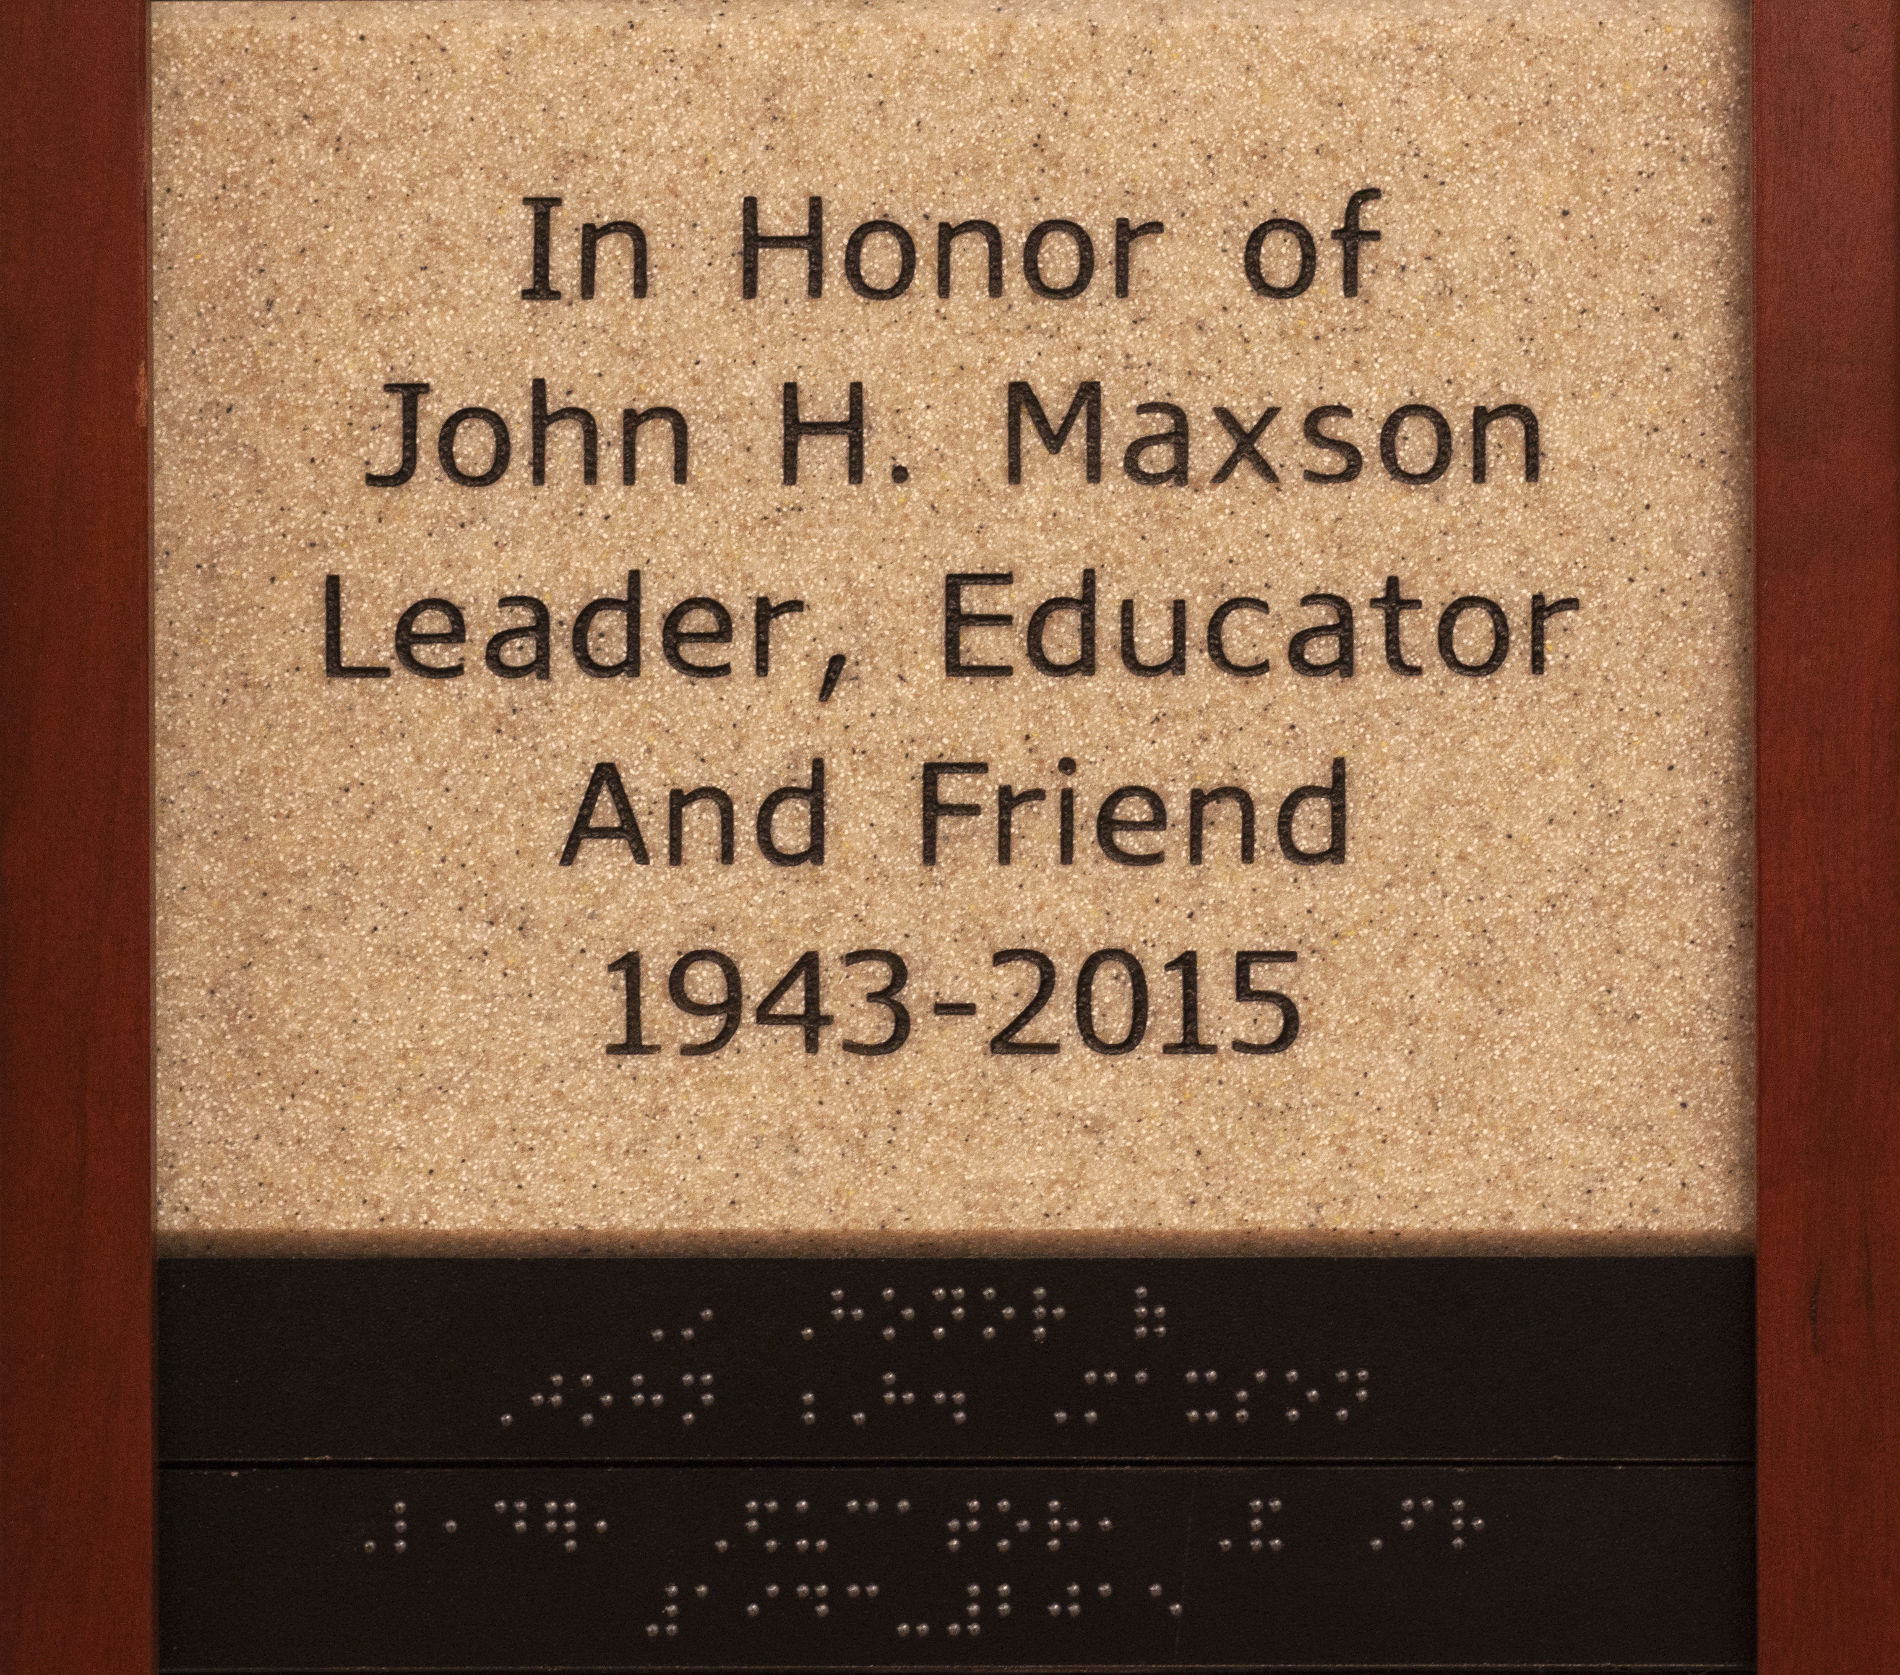 In honor of John H. Maxson Leader, Educator And Friend 1943-2015